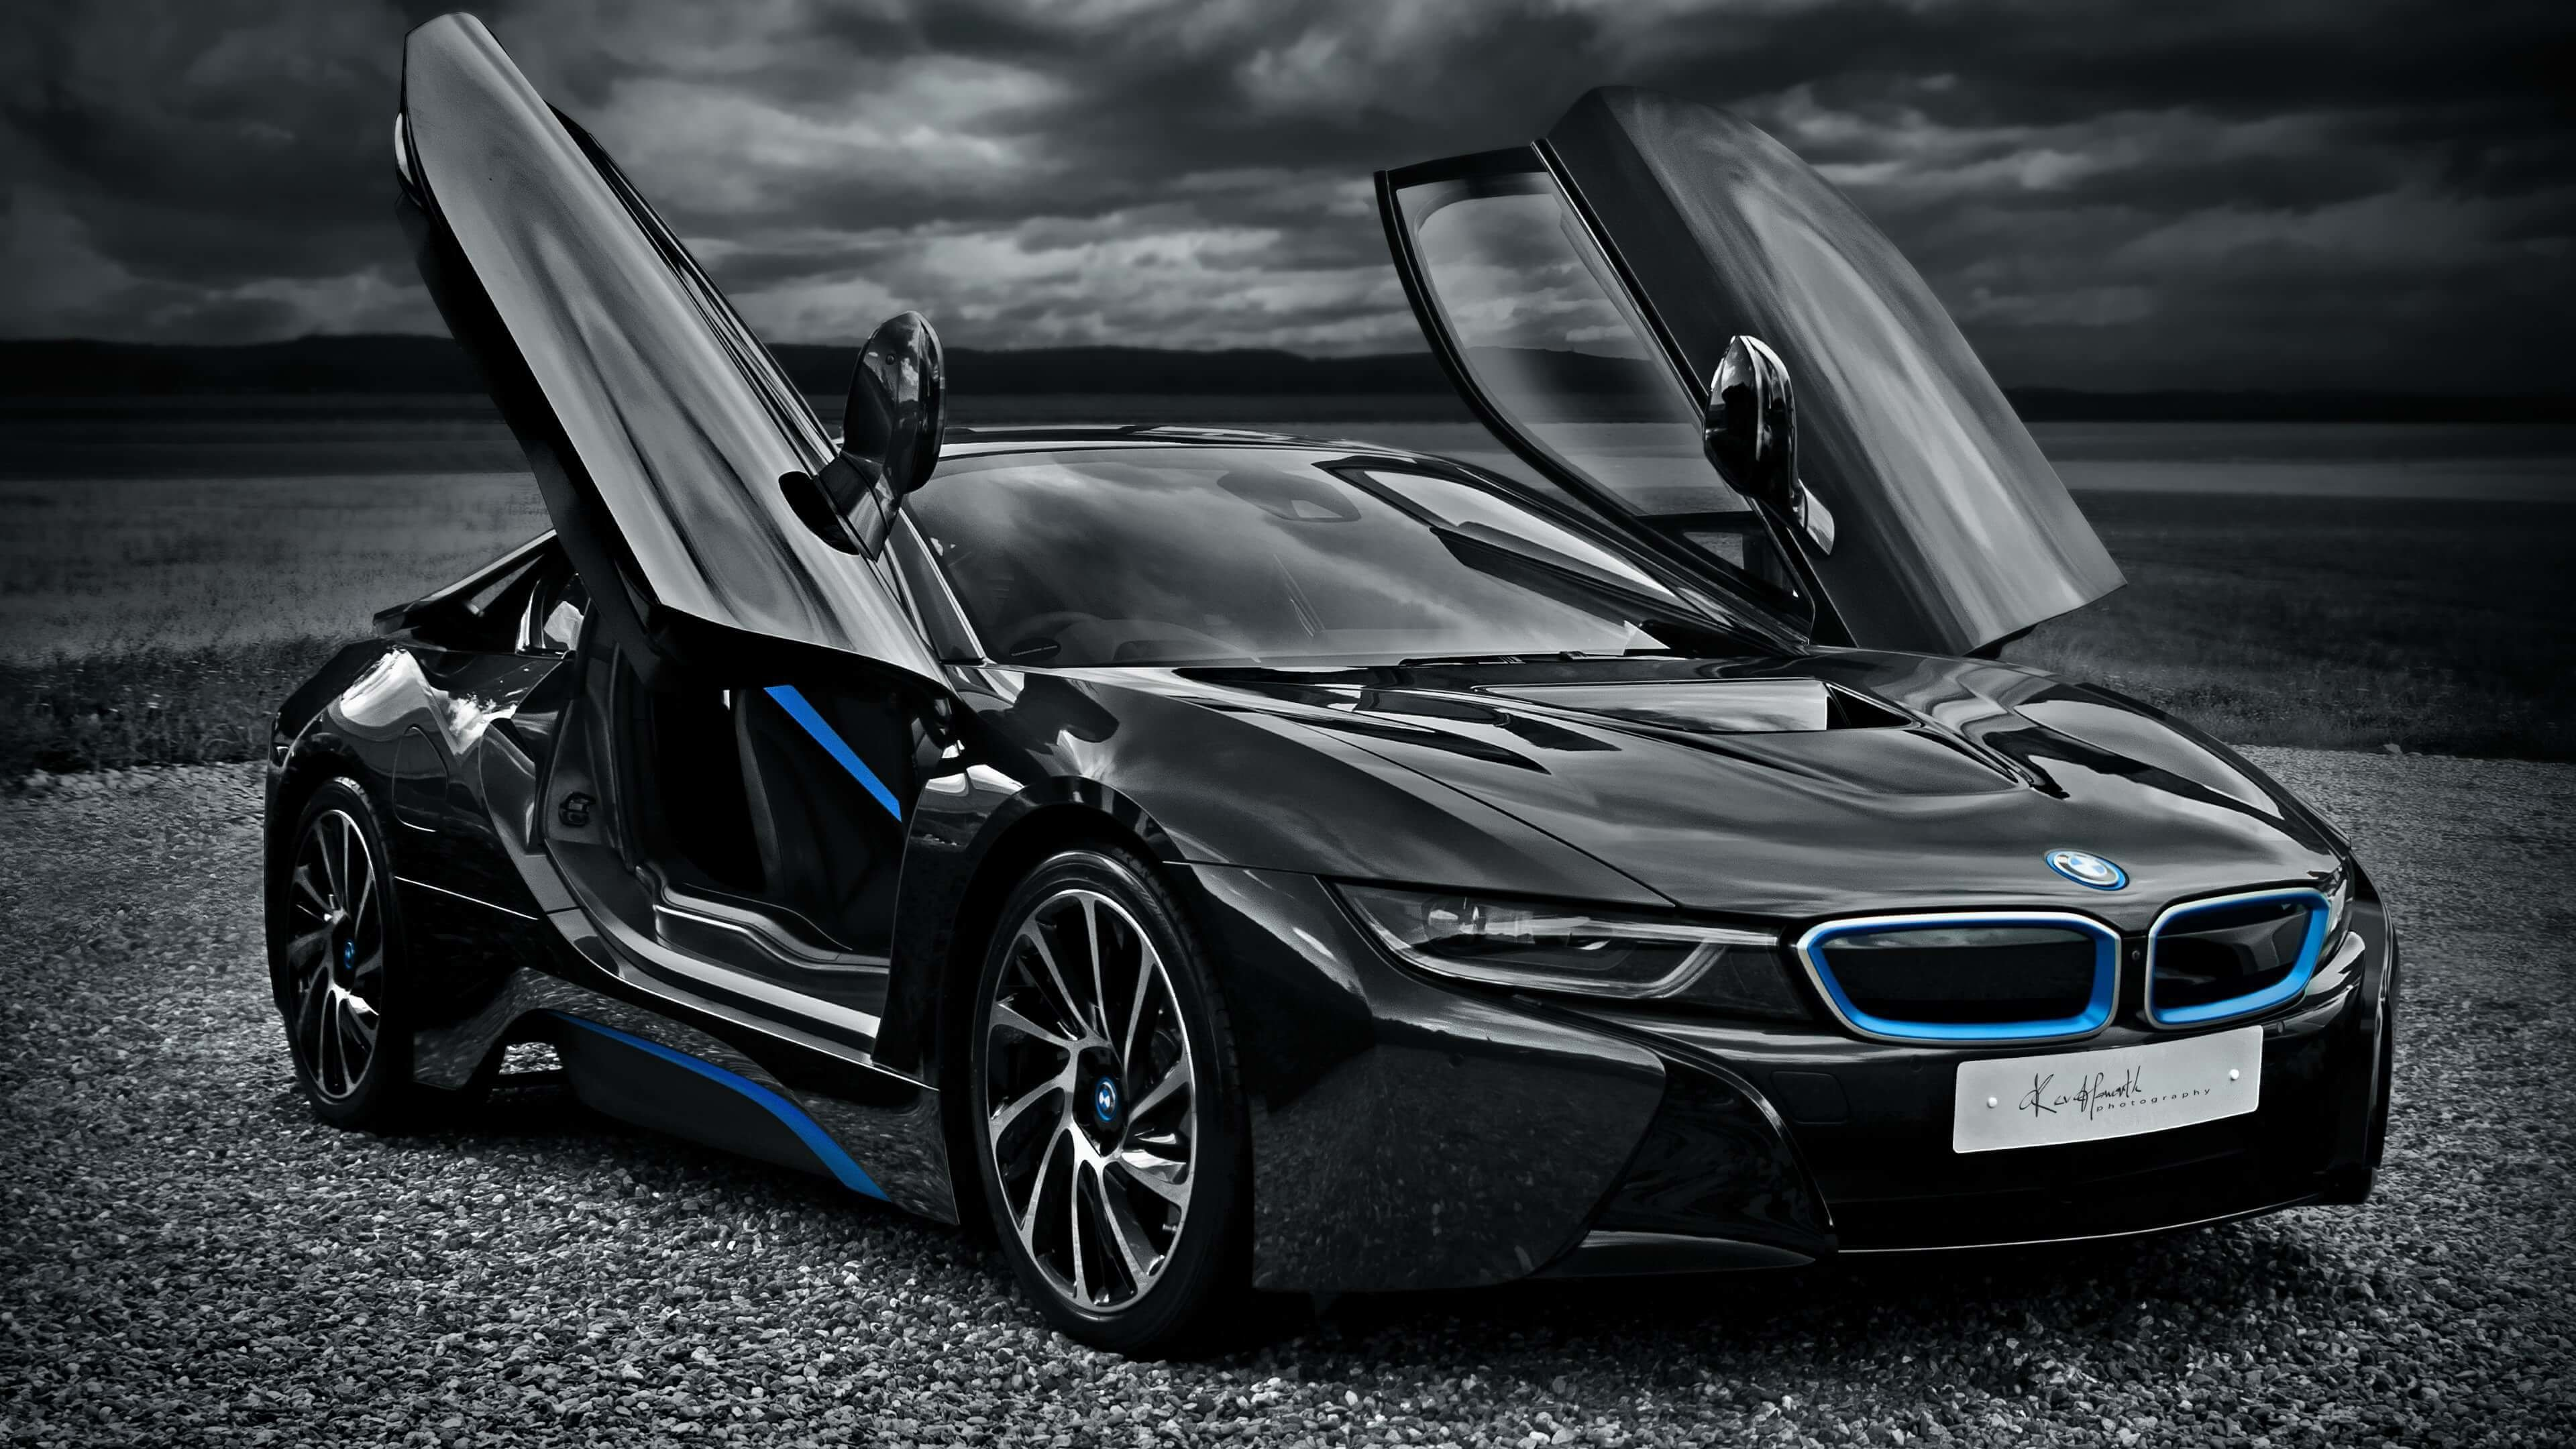 New Free Download Bmw I8 Backgrounds Pixelstalk Net On This Month